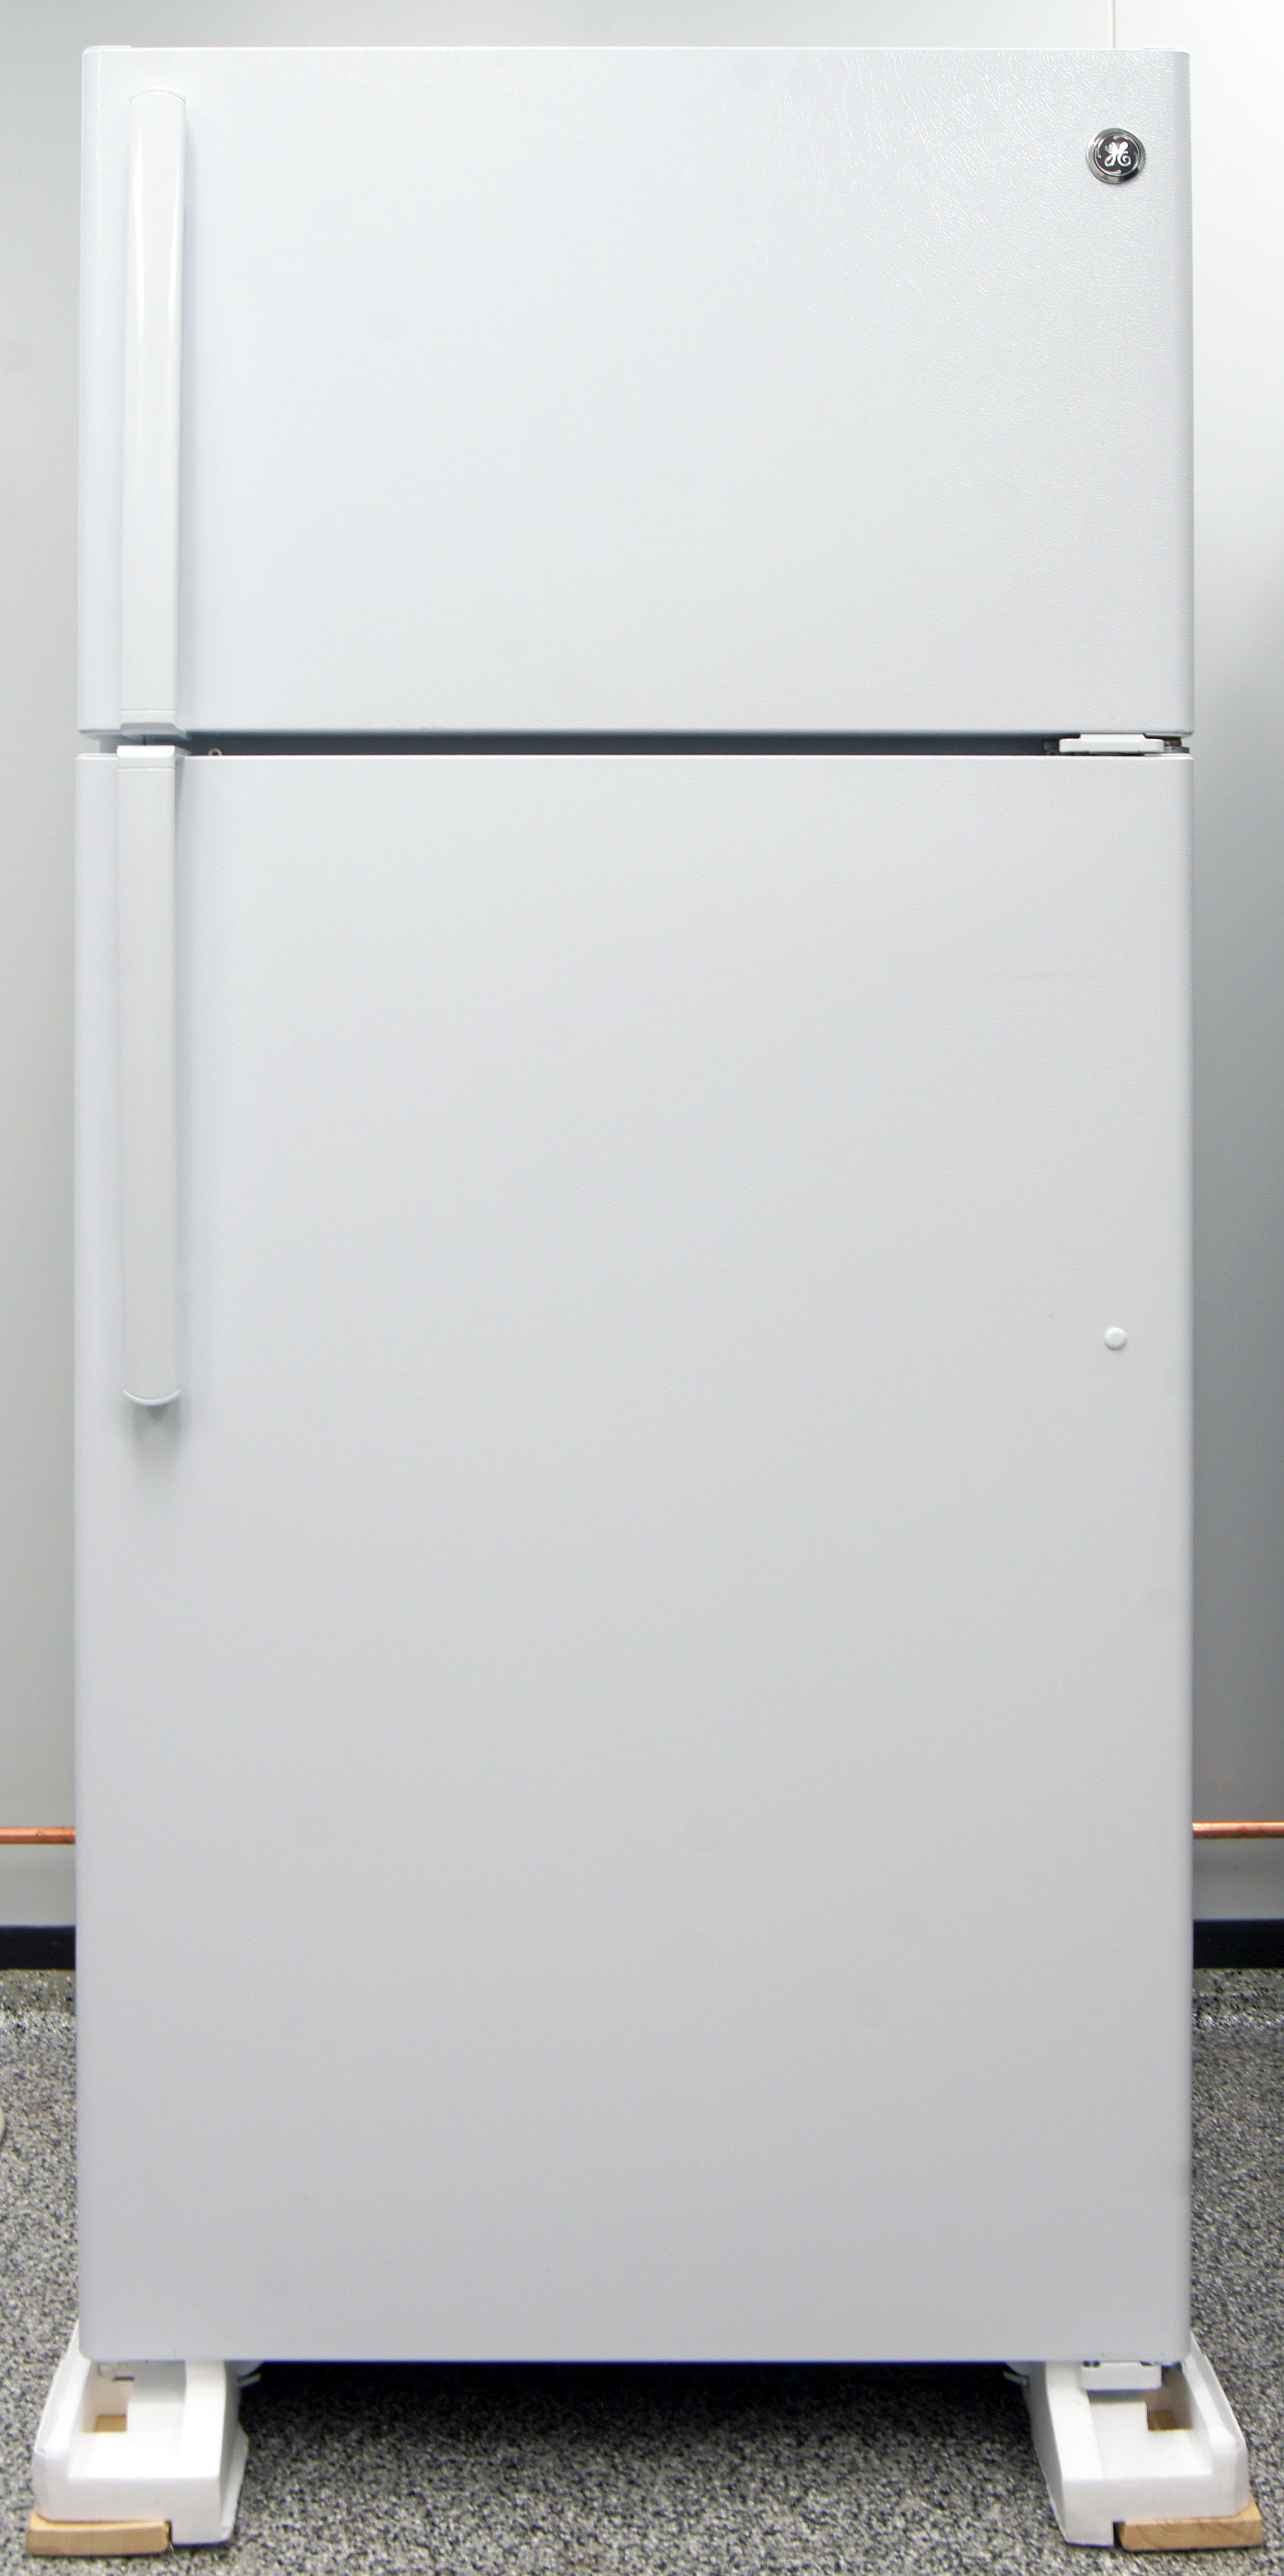 The GE GTS16DTHWW' is an unassuming white top freezer. Pretty straightforward.